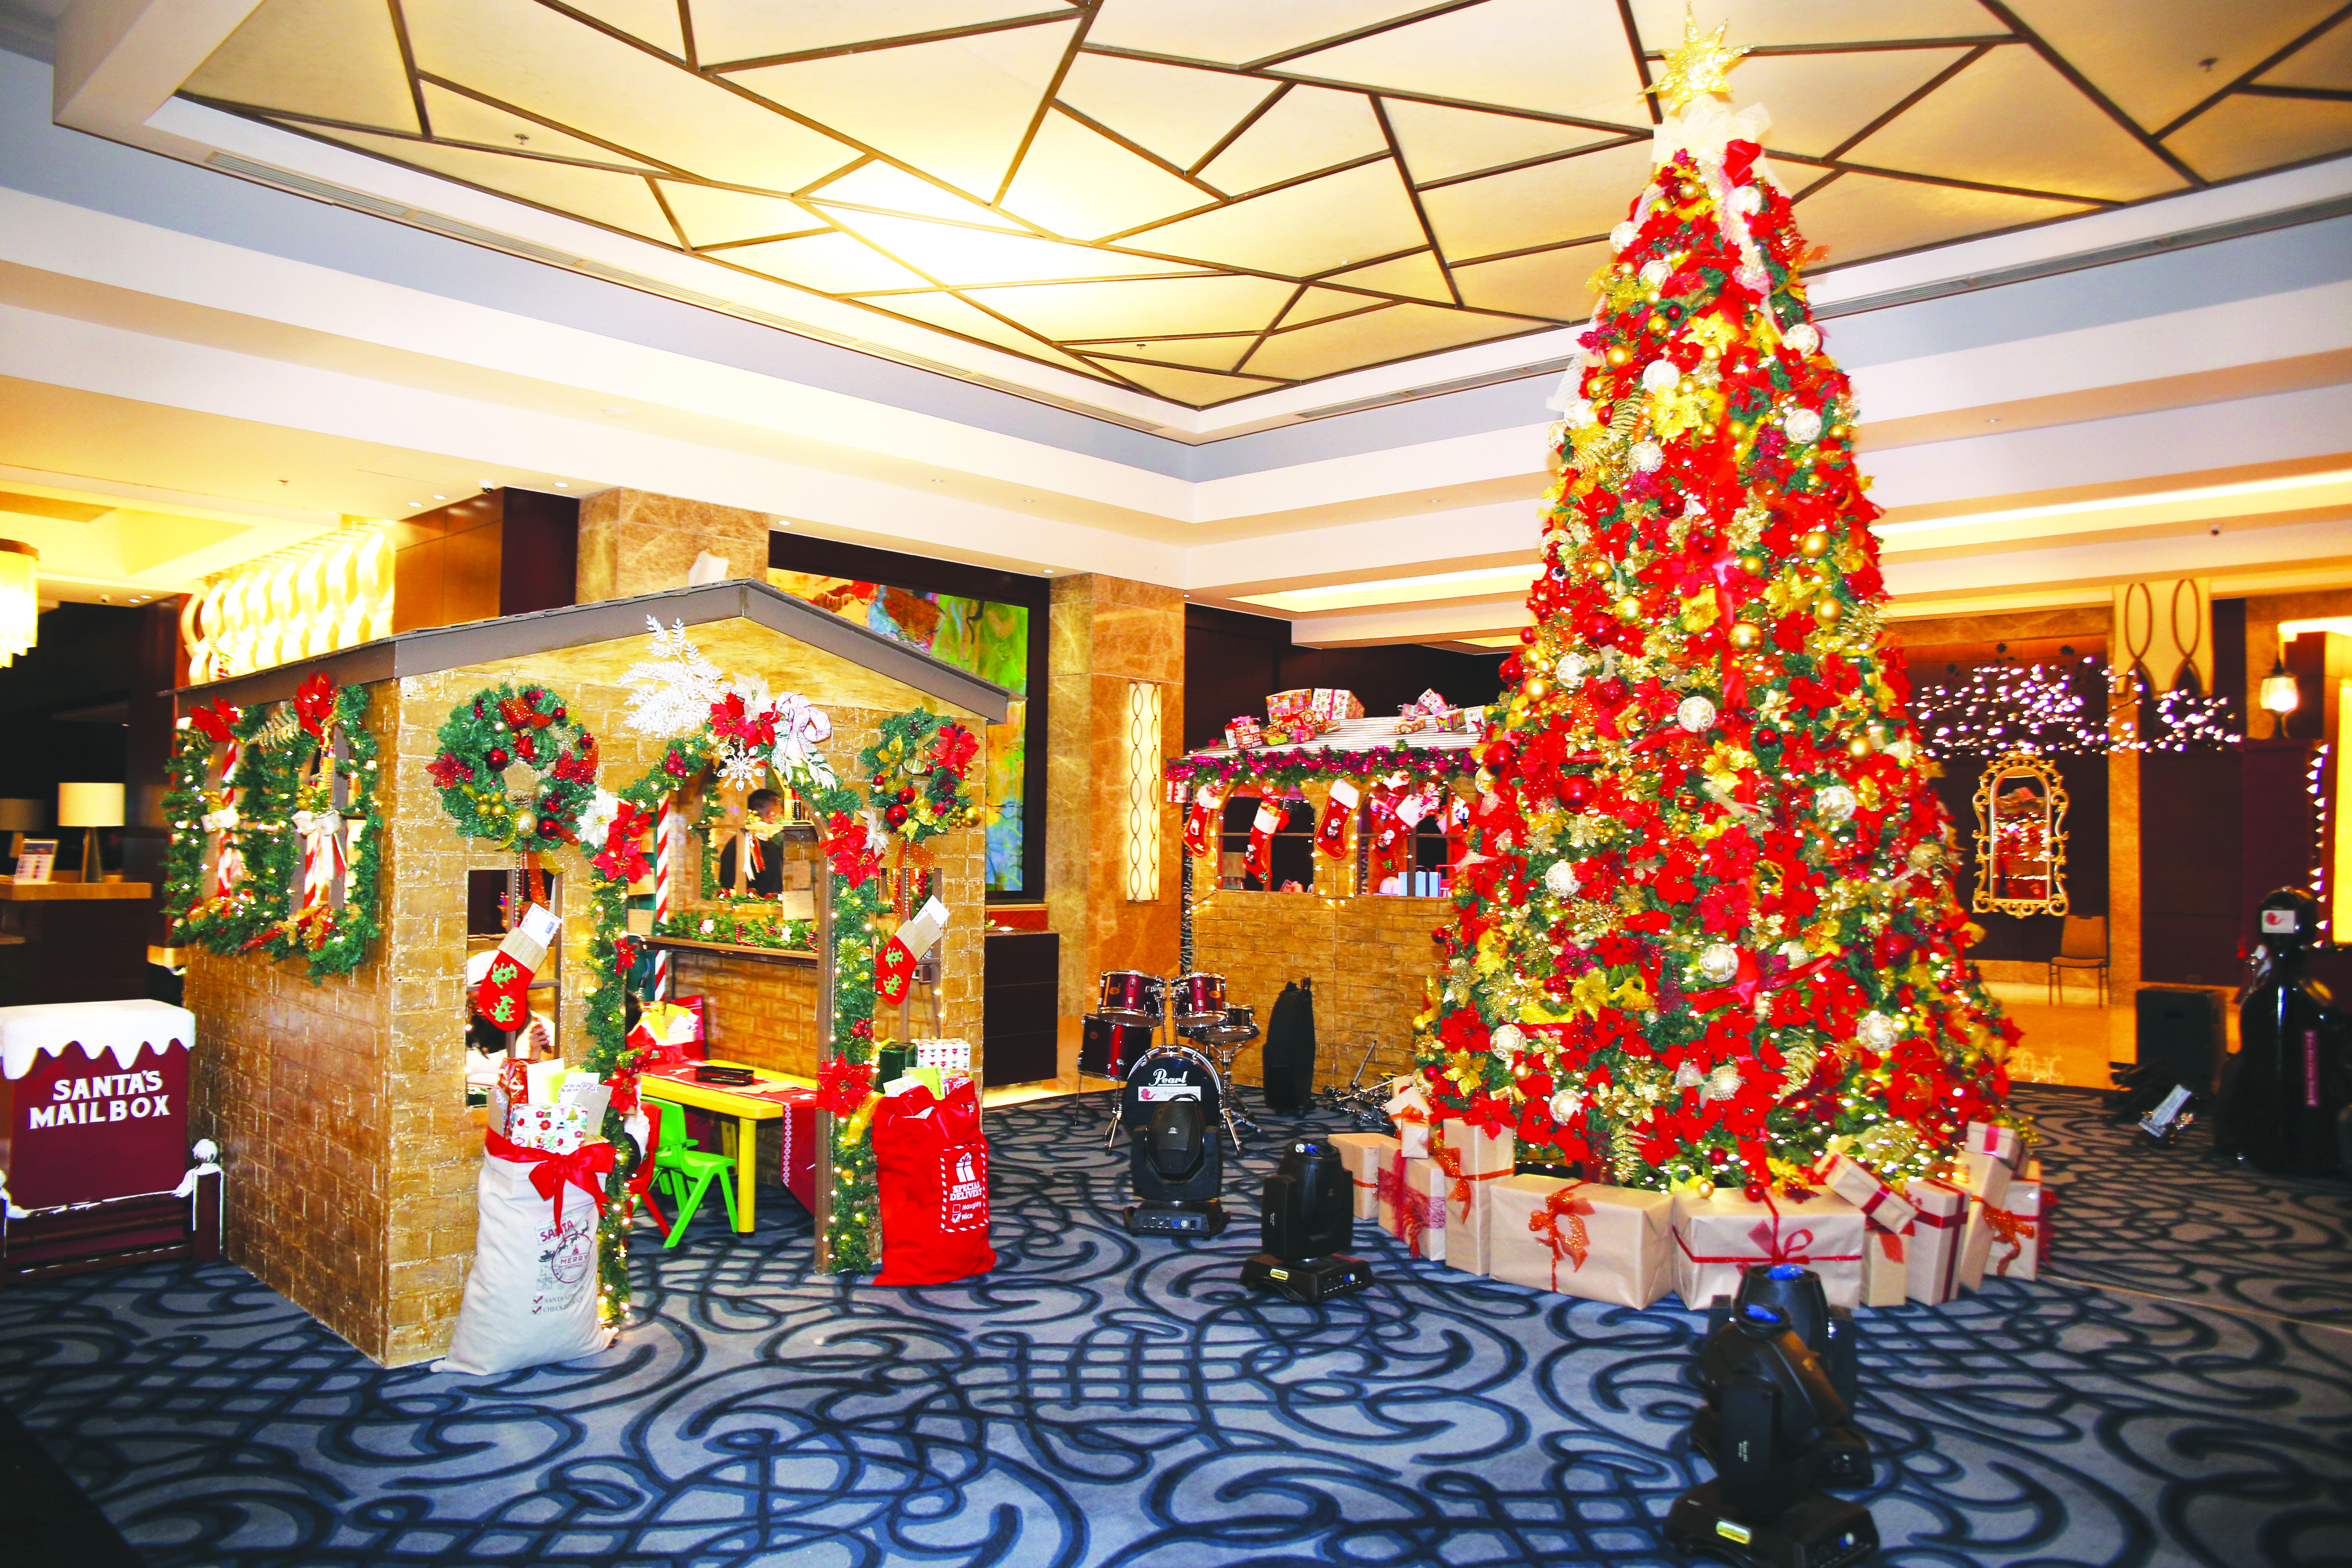 Santaville at the Gallery of Crimson Hotel